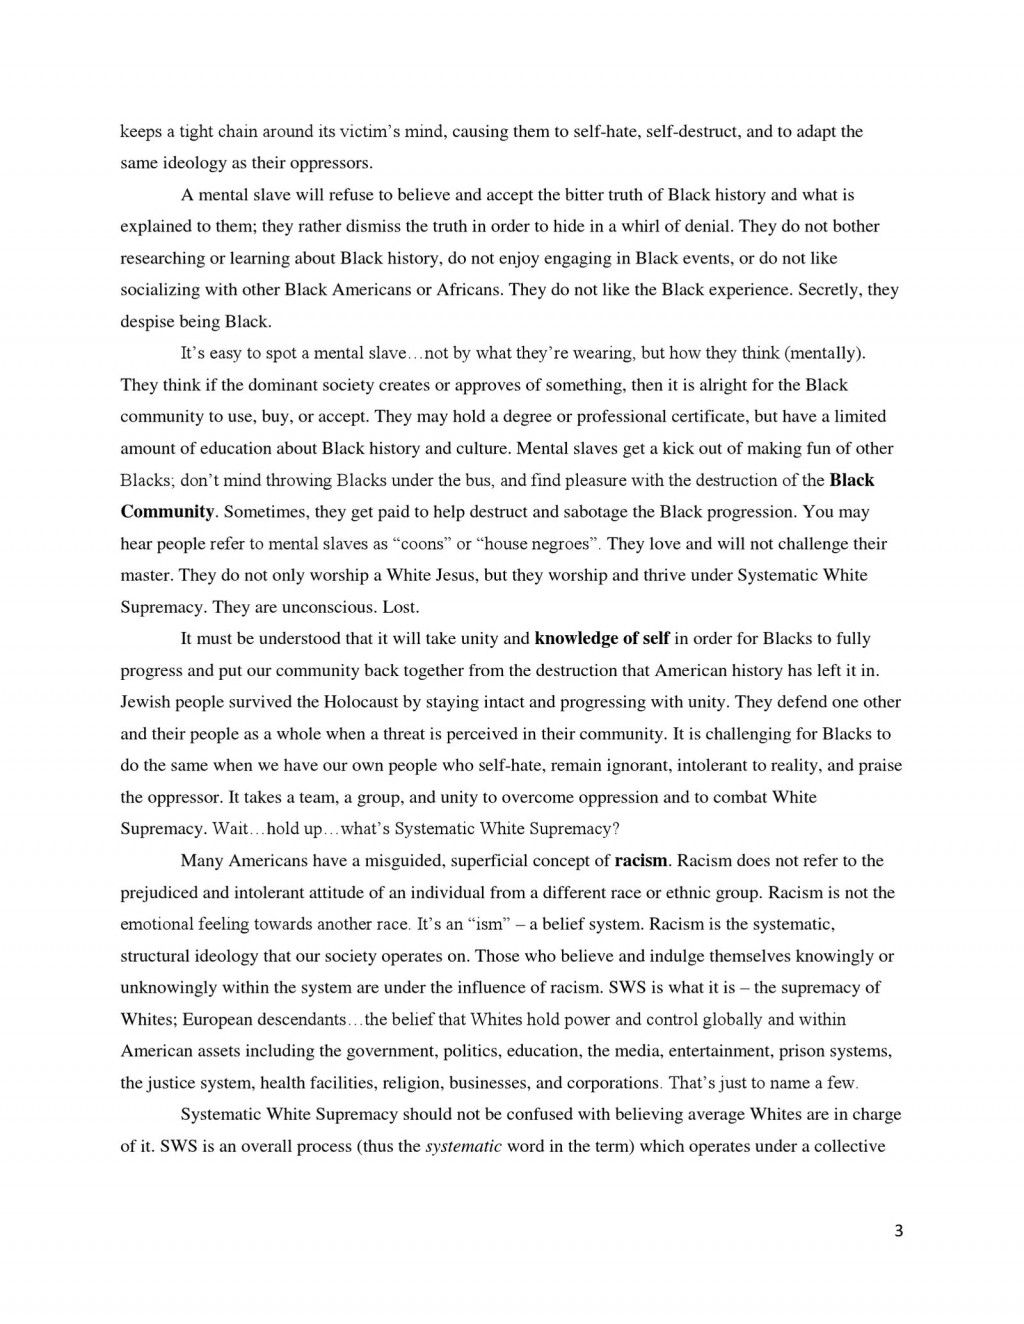 022 Racism Argumentative Essay Large Fantastic Topics Examples In Sports Large